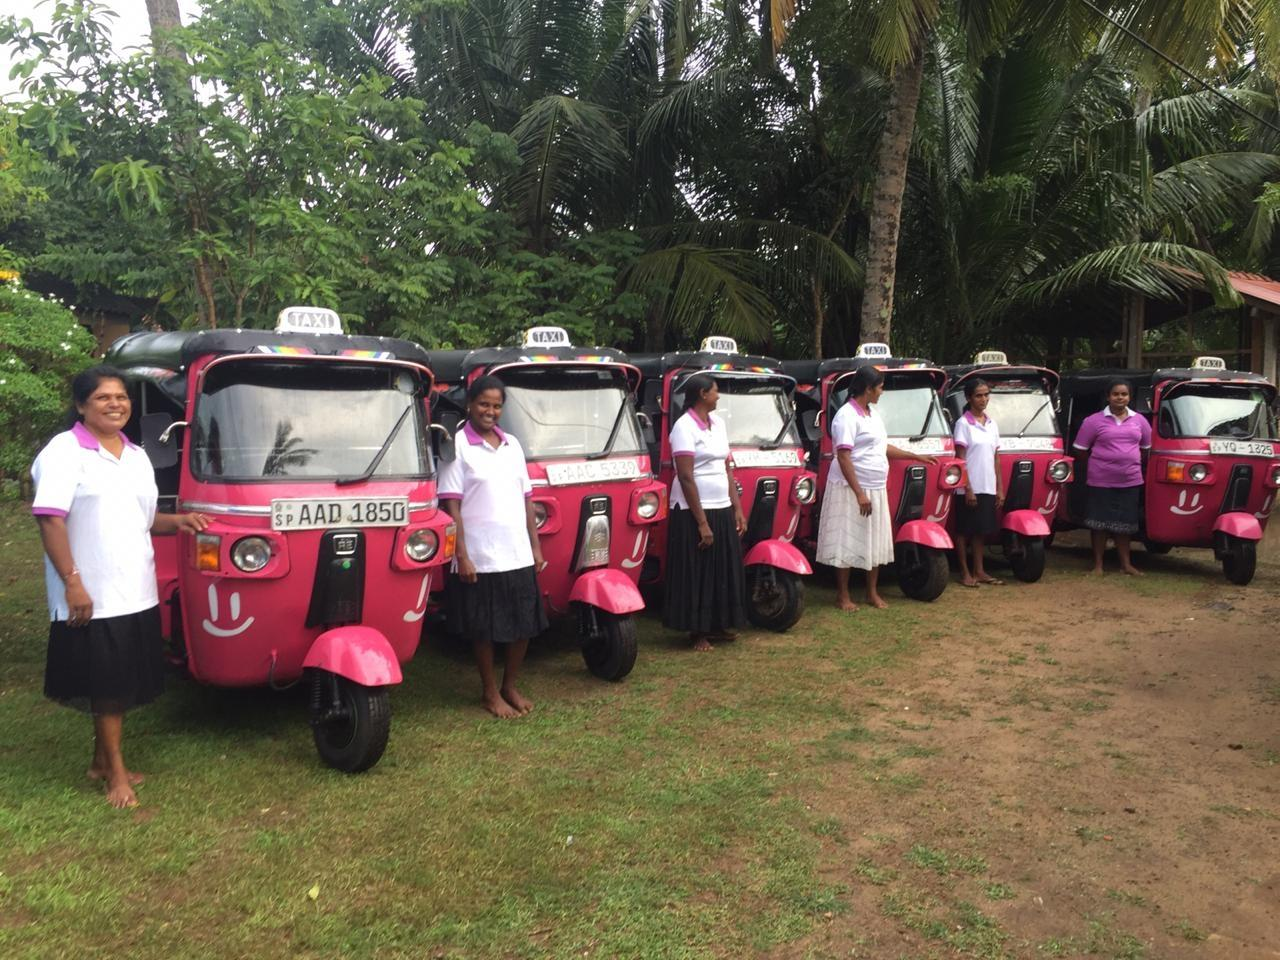 Think pink Sri Lanka - women driving for women